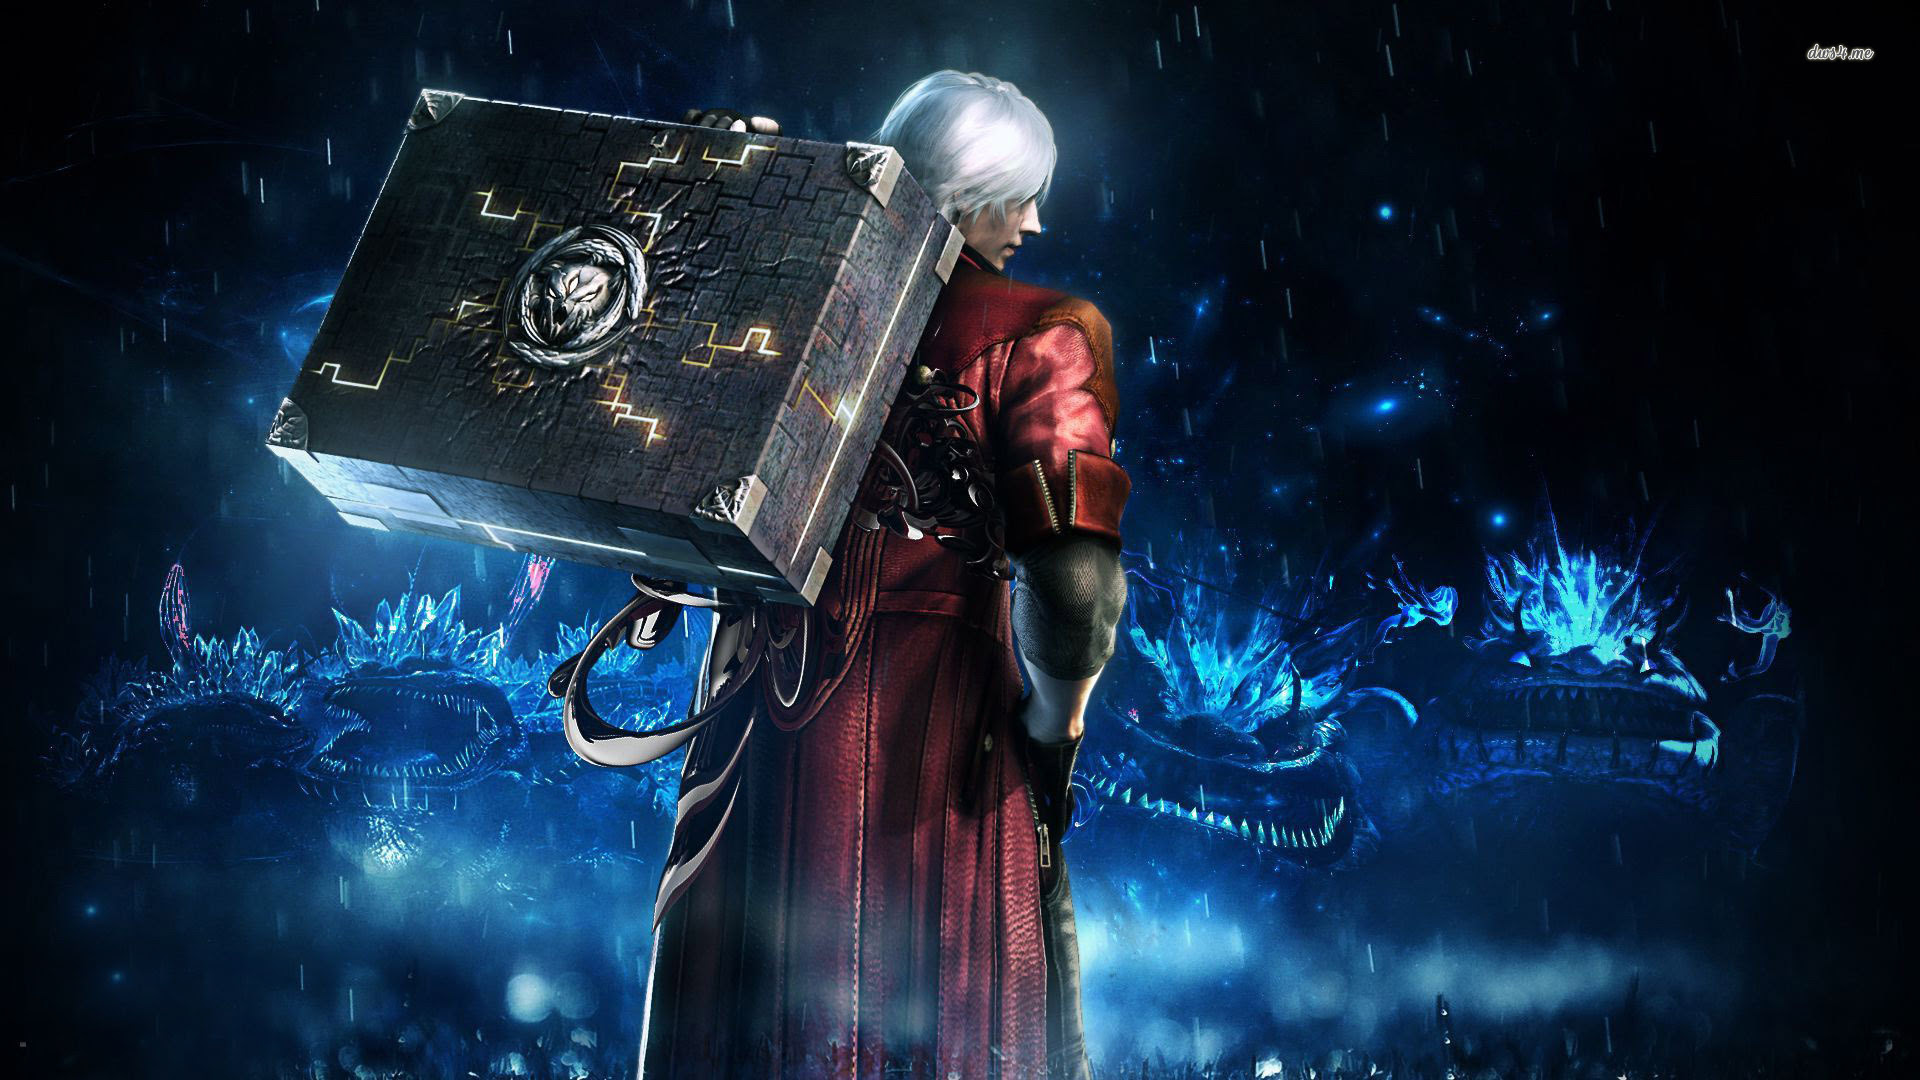 Devil May Cry Live Wallpaper Download Devil May Cry Live 1920x1080